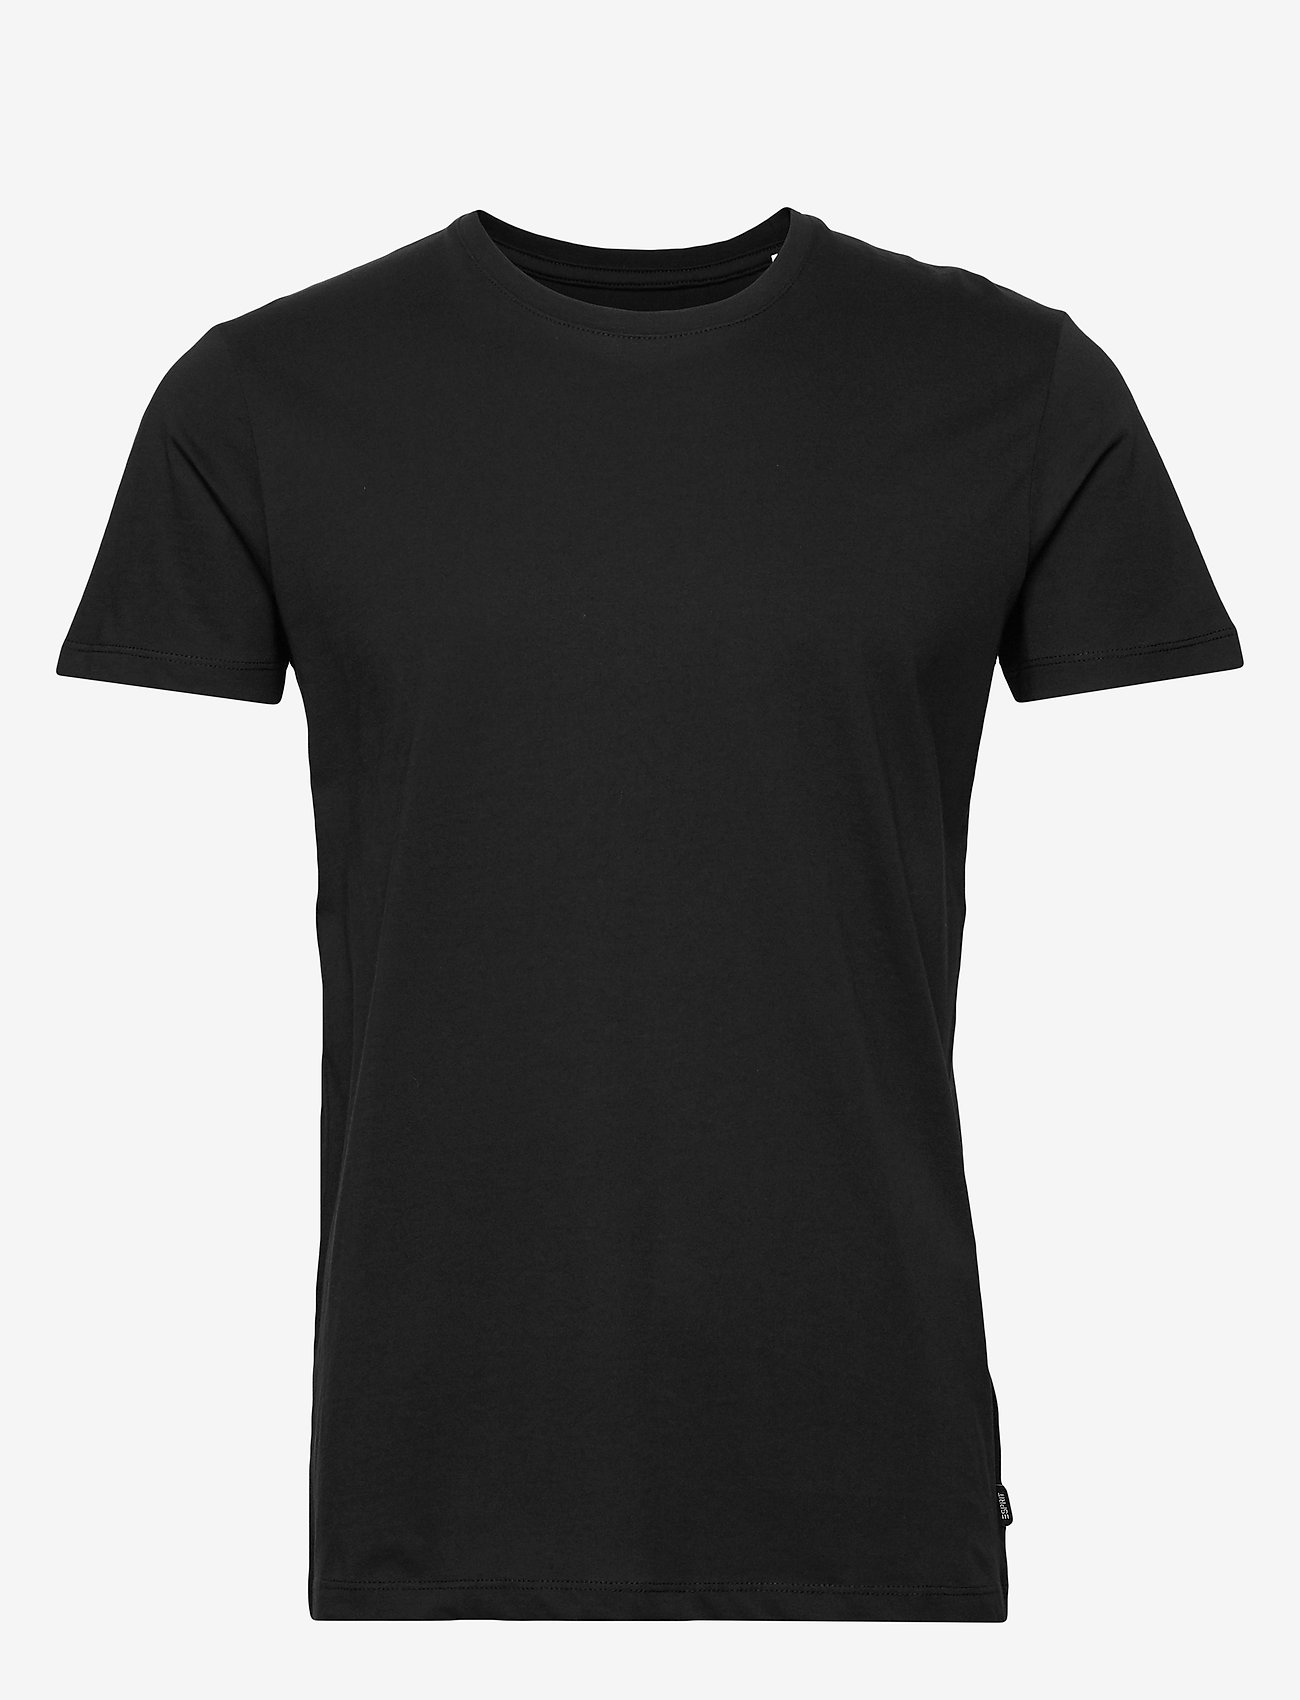 Esprit Casual - T-Shirts - basic t-shirts - black - 0